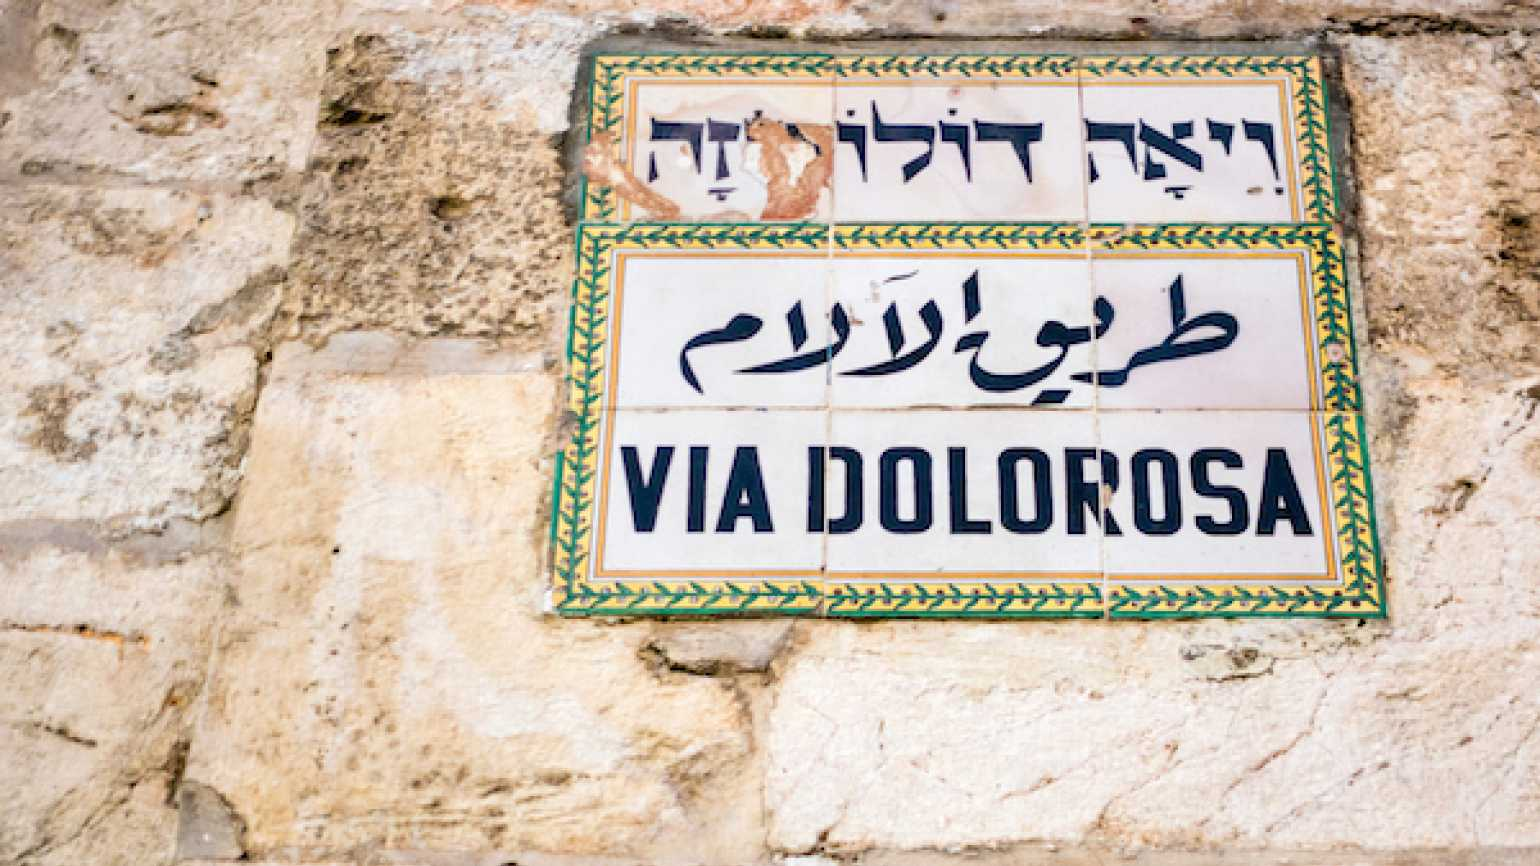 How a former altar boy rediscovered the Stations of the Cross in Jerusalem.